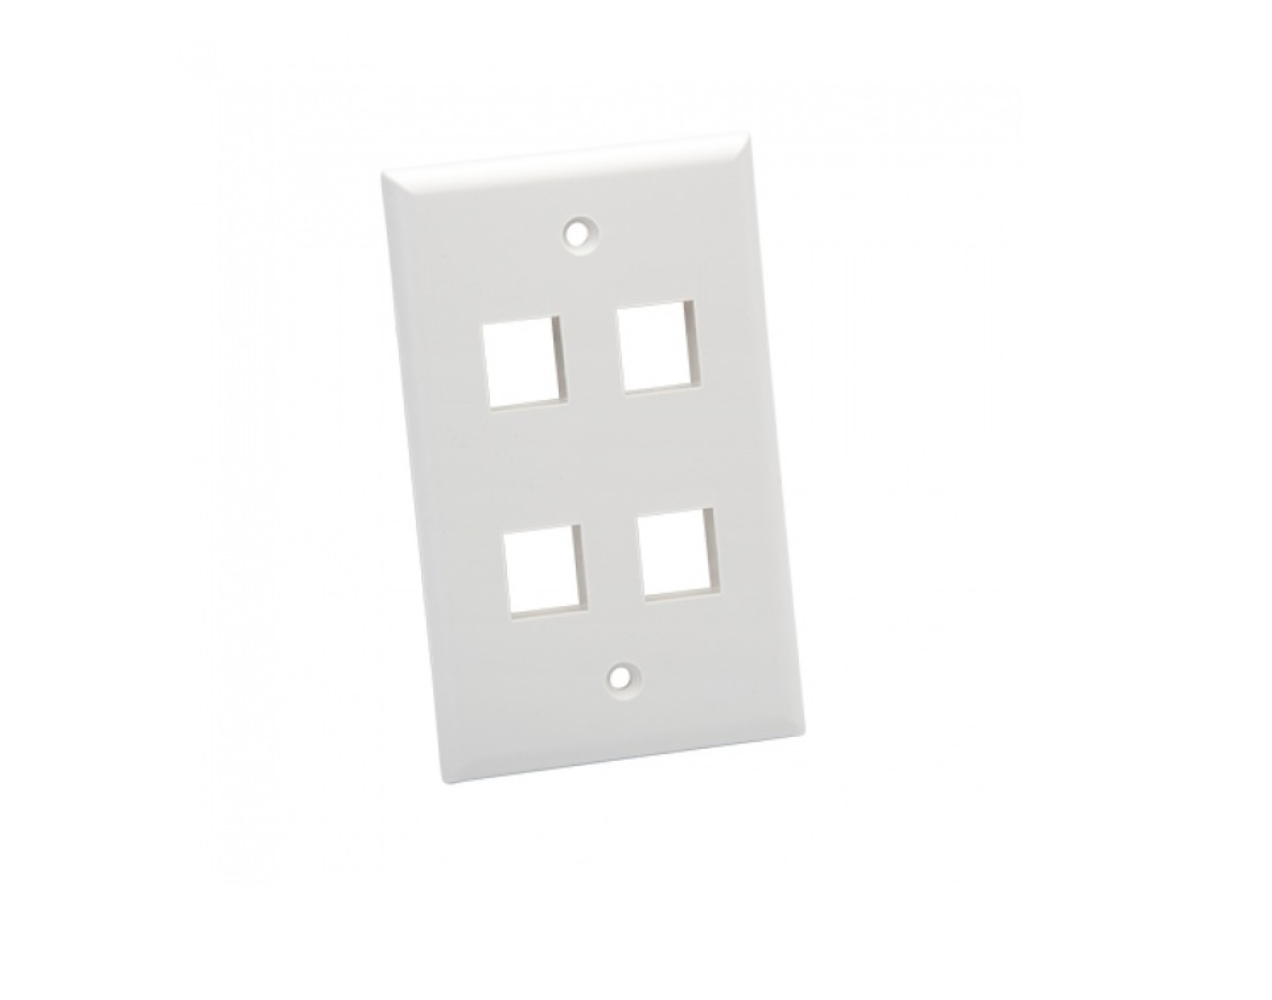 photo of 4 PORT SOLID WALL PLATES, WHITE, PLATINUM TOOLS, 25 PC INSTALLER PACK,  604WH-25